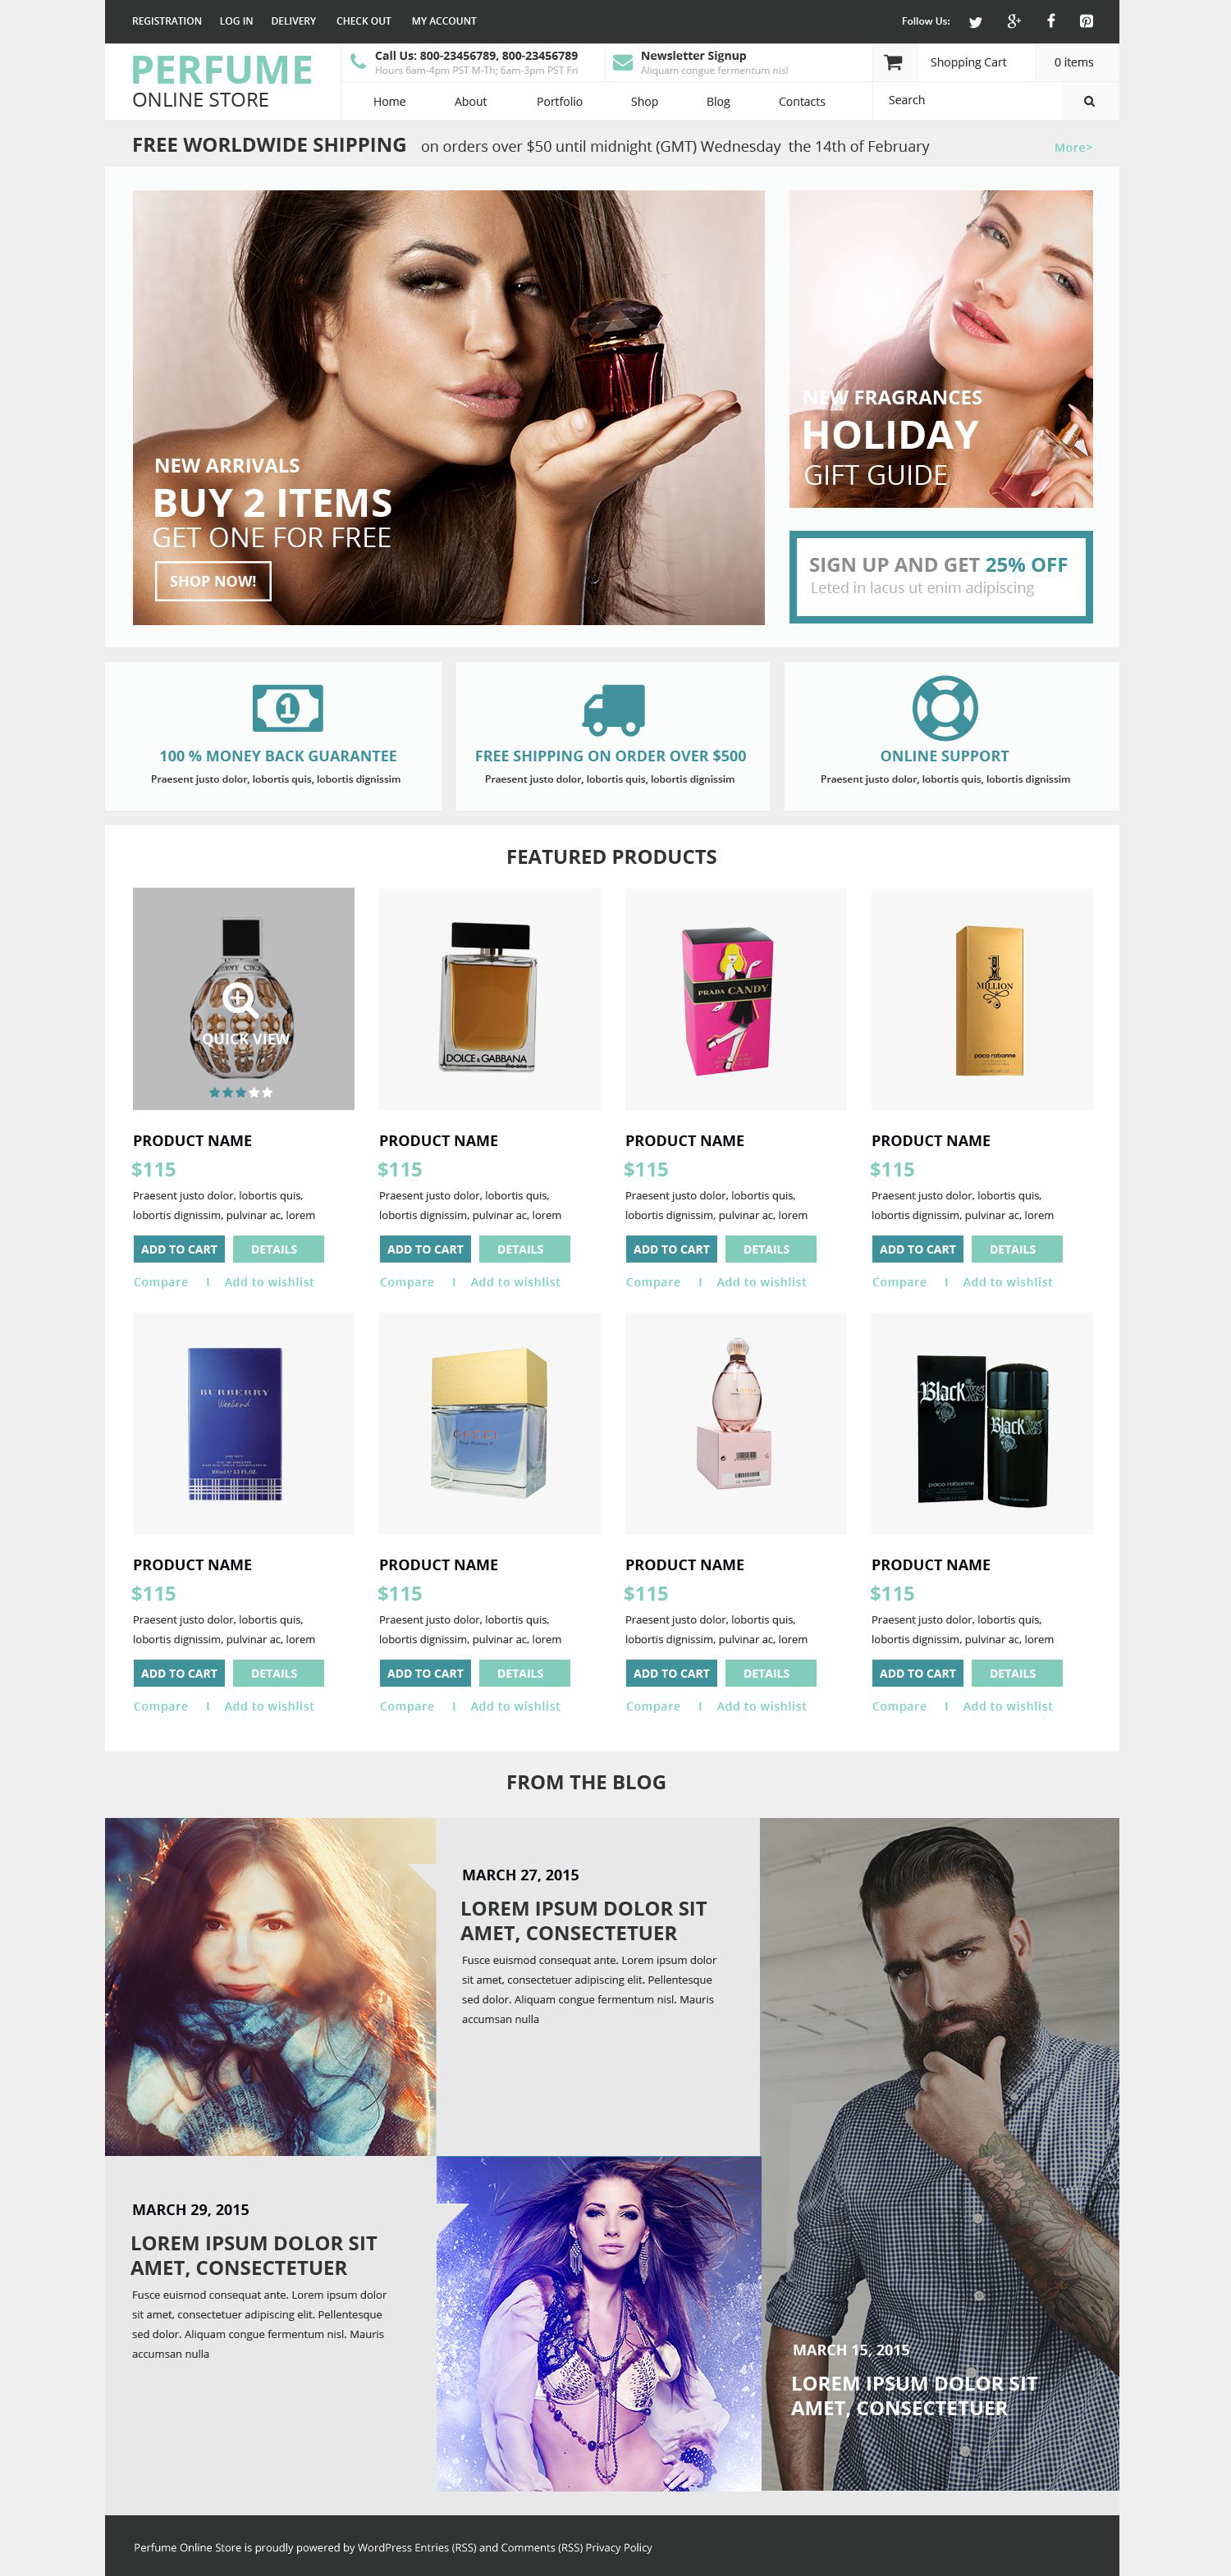 The Perfume Online Shop WooCommerce Design 53496, one of the best WooCommerce themes of its kind (beauty, most popular), also known as perfume online shop WooCommerce template, cosmetic WooCommerce template, beauty WooCommerce template, fashion WooCommerce template, health care WooCommerce template, women solution WooCommerce template, service WooCommerce template, catalogue WooCommerce template, product WooCommerce template, gift WooCommerce template, skincare WooCommerce template, hair care WooCommerce template, style WooCommerce template, cream WooCommerce template, natural WooCommerce template, rejuvenation WooCommerce template, damping WooCommerce template, lifting WooCommerce template, peeling WooCommerce template, specials WooCommerce template, lipstick WooCommerce template, mascara WooCommerce template, nail WooCommerce template, polish WooCommerce template, shampoo WooCommerce template, body WooCommerce template, milk WooCommerce template, lotion WooCommerce template, hand WooCommerce template, client and related with perfume online shop, cosmetic, beauty, fashion, health care, women solution, service, catalogue, product, gift, skincare, hair care, style, cream, natural, rejuvenation, damping, lifting, peeling, specials, lipstick, mascara, nail, polish, shampoo, body, milk, lotion, hand, client, etc.